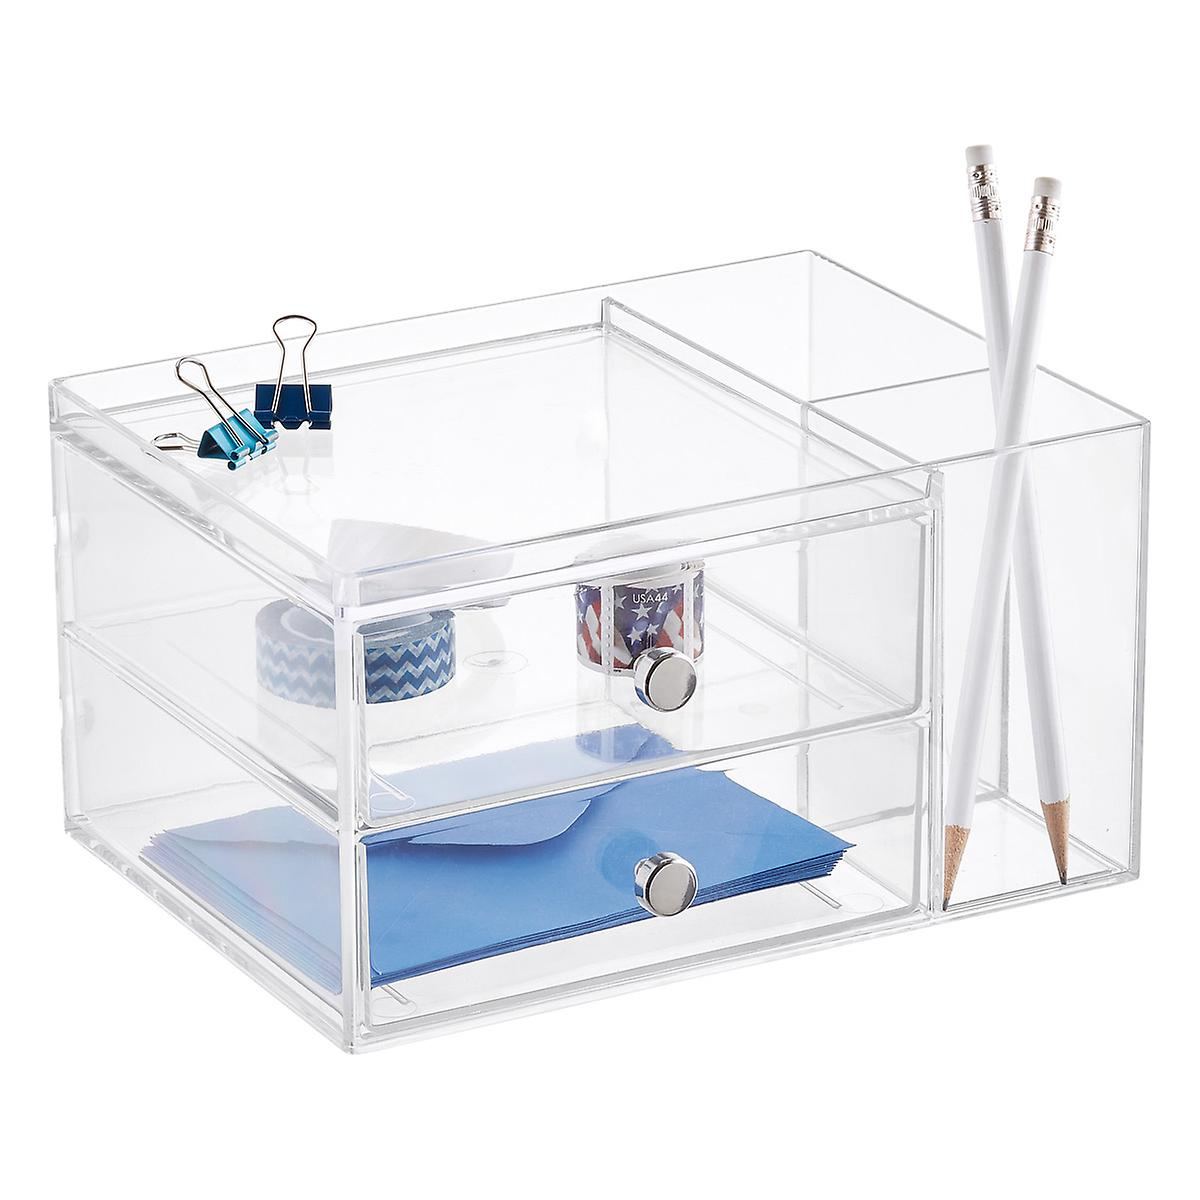 2 Drawer Desk Organizer The Container Store